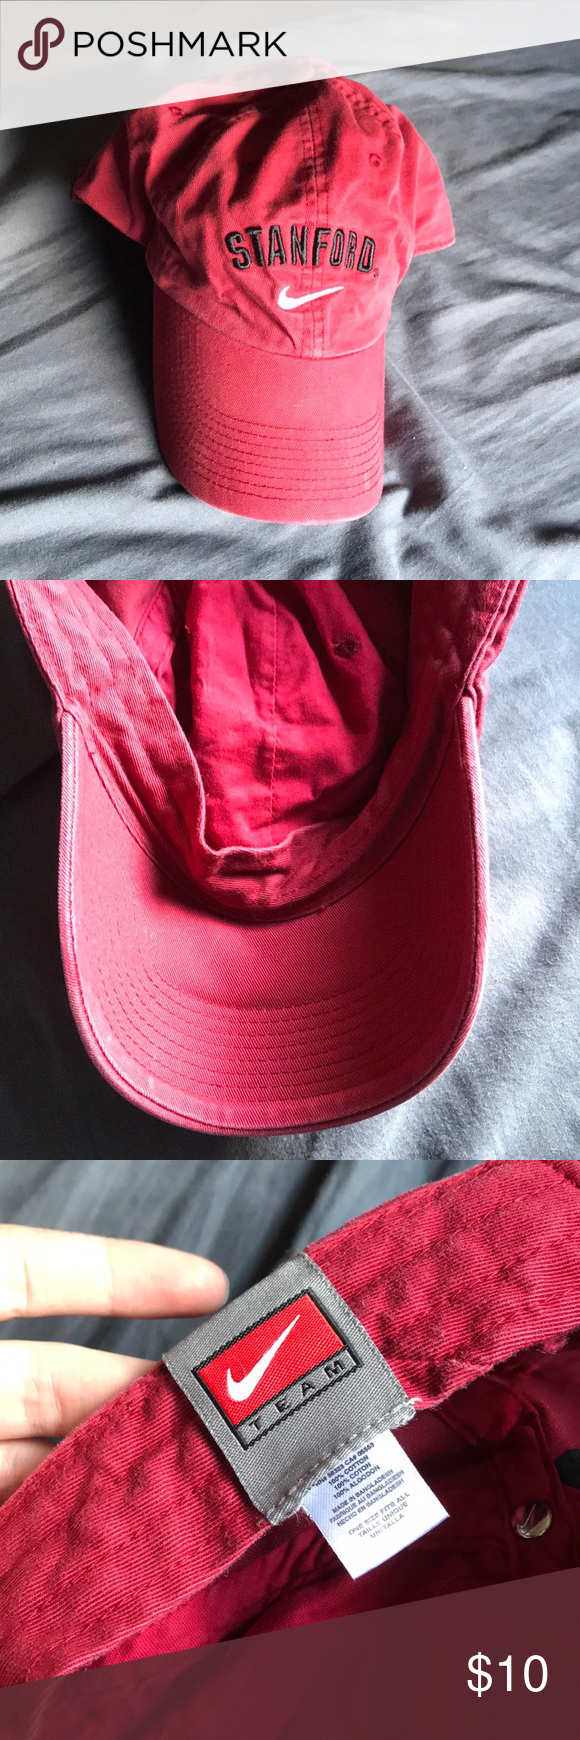 best website ded1f bc875 Nike Stanford hat Nike Stanford hat, adjustable size, no flaws Nike  Accessories Hats